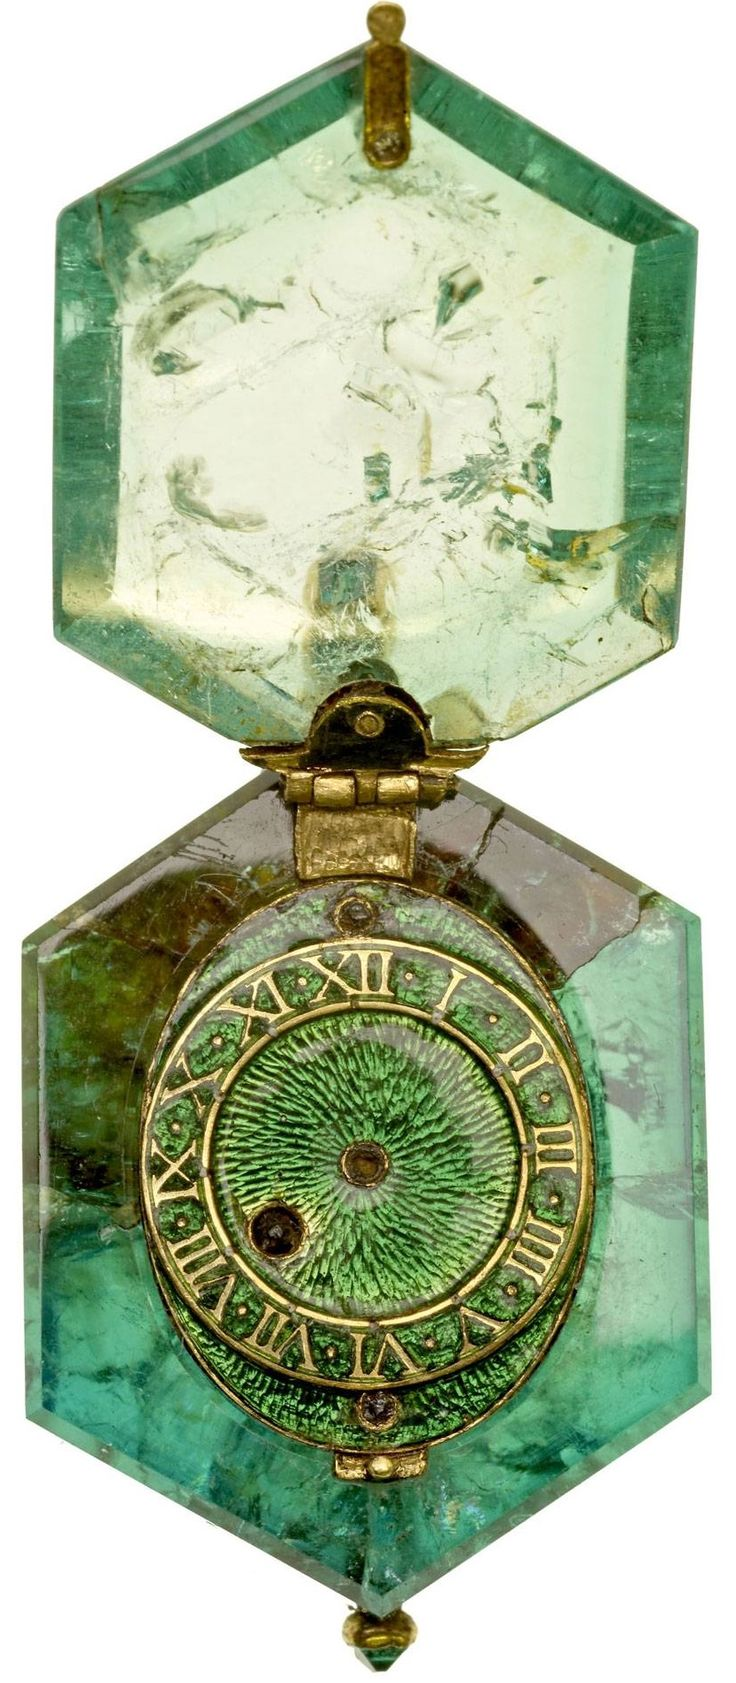 Emerald watch,16th- early 17th century